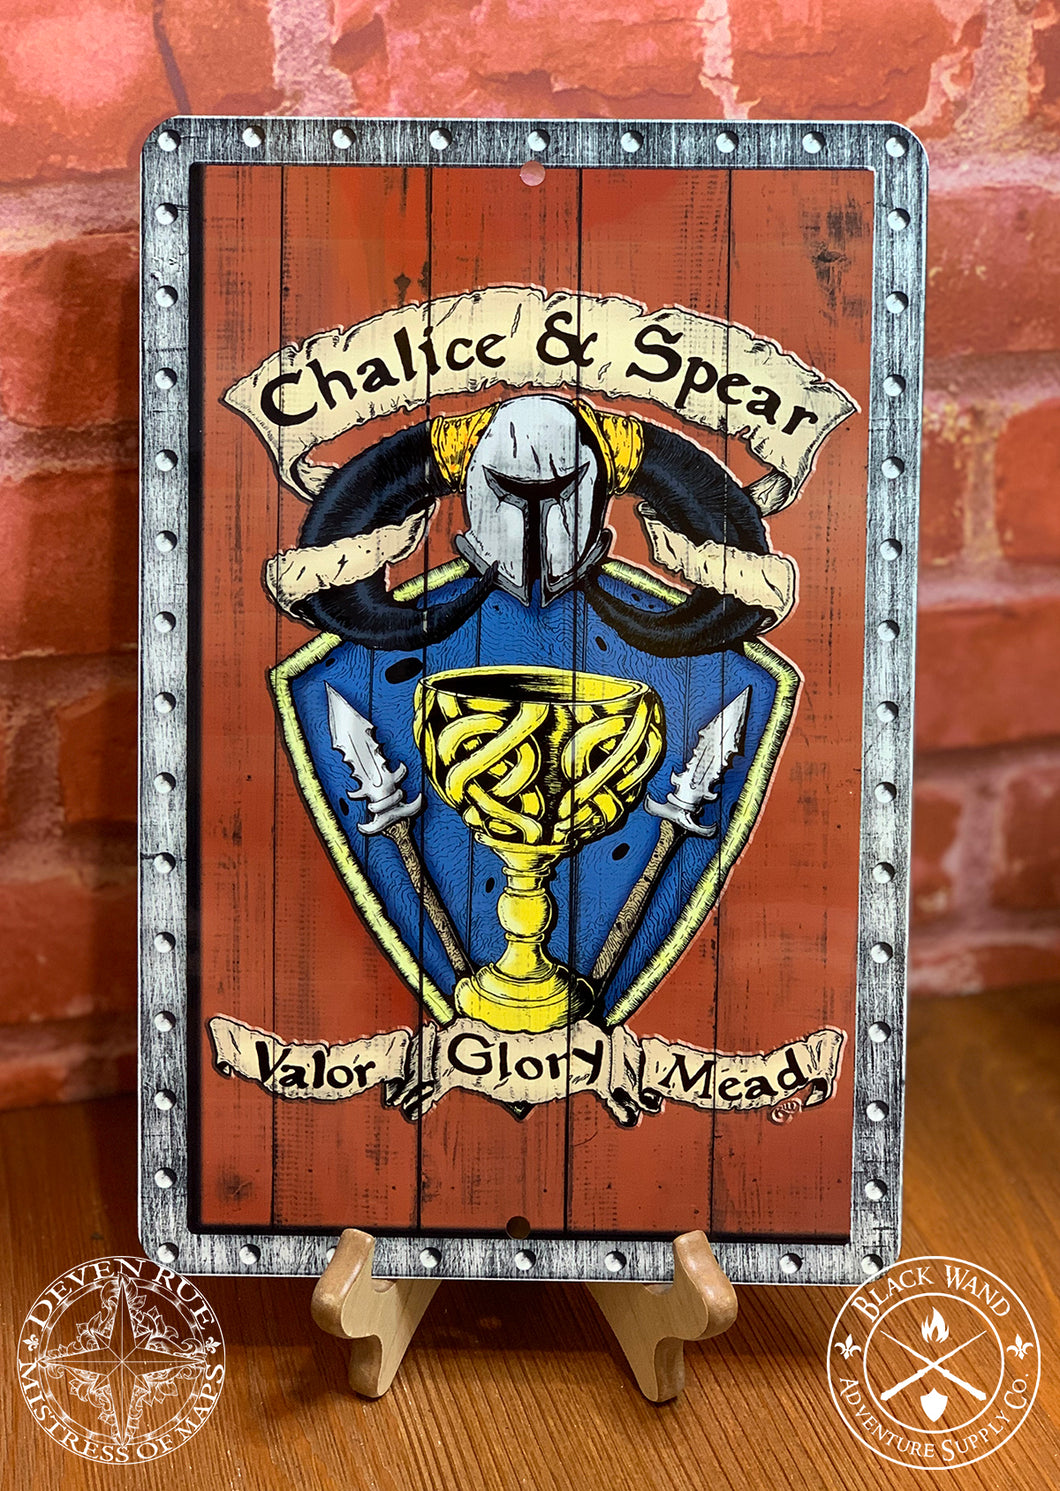 Chalice & Spear metal sign